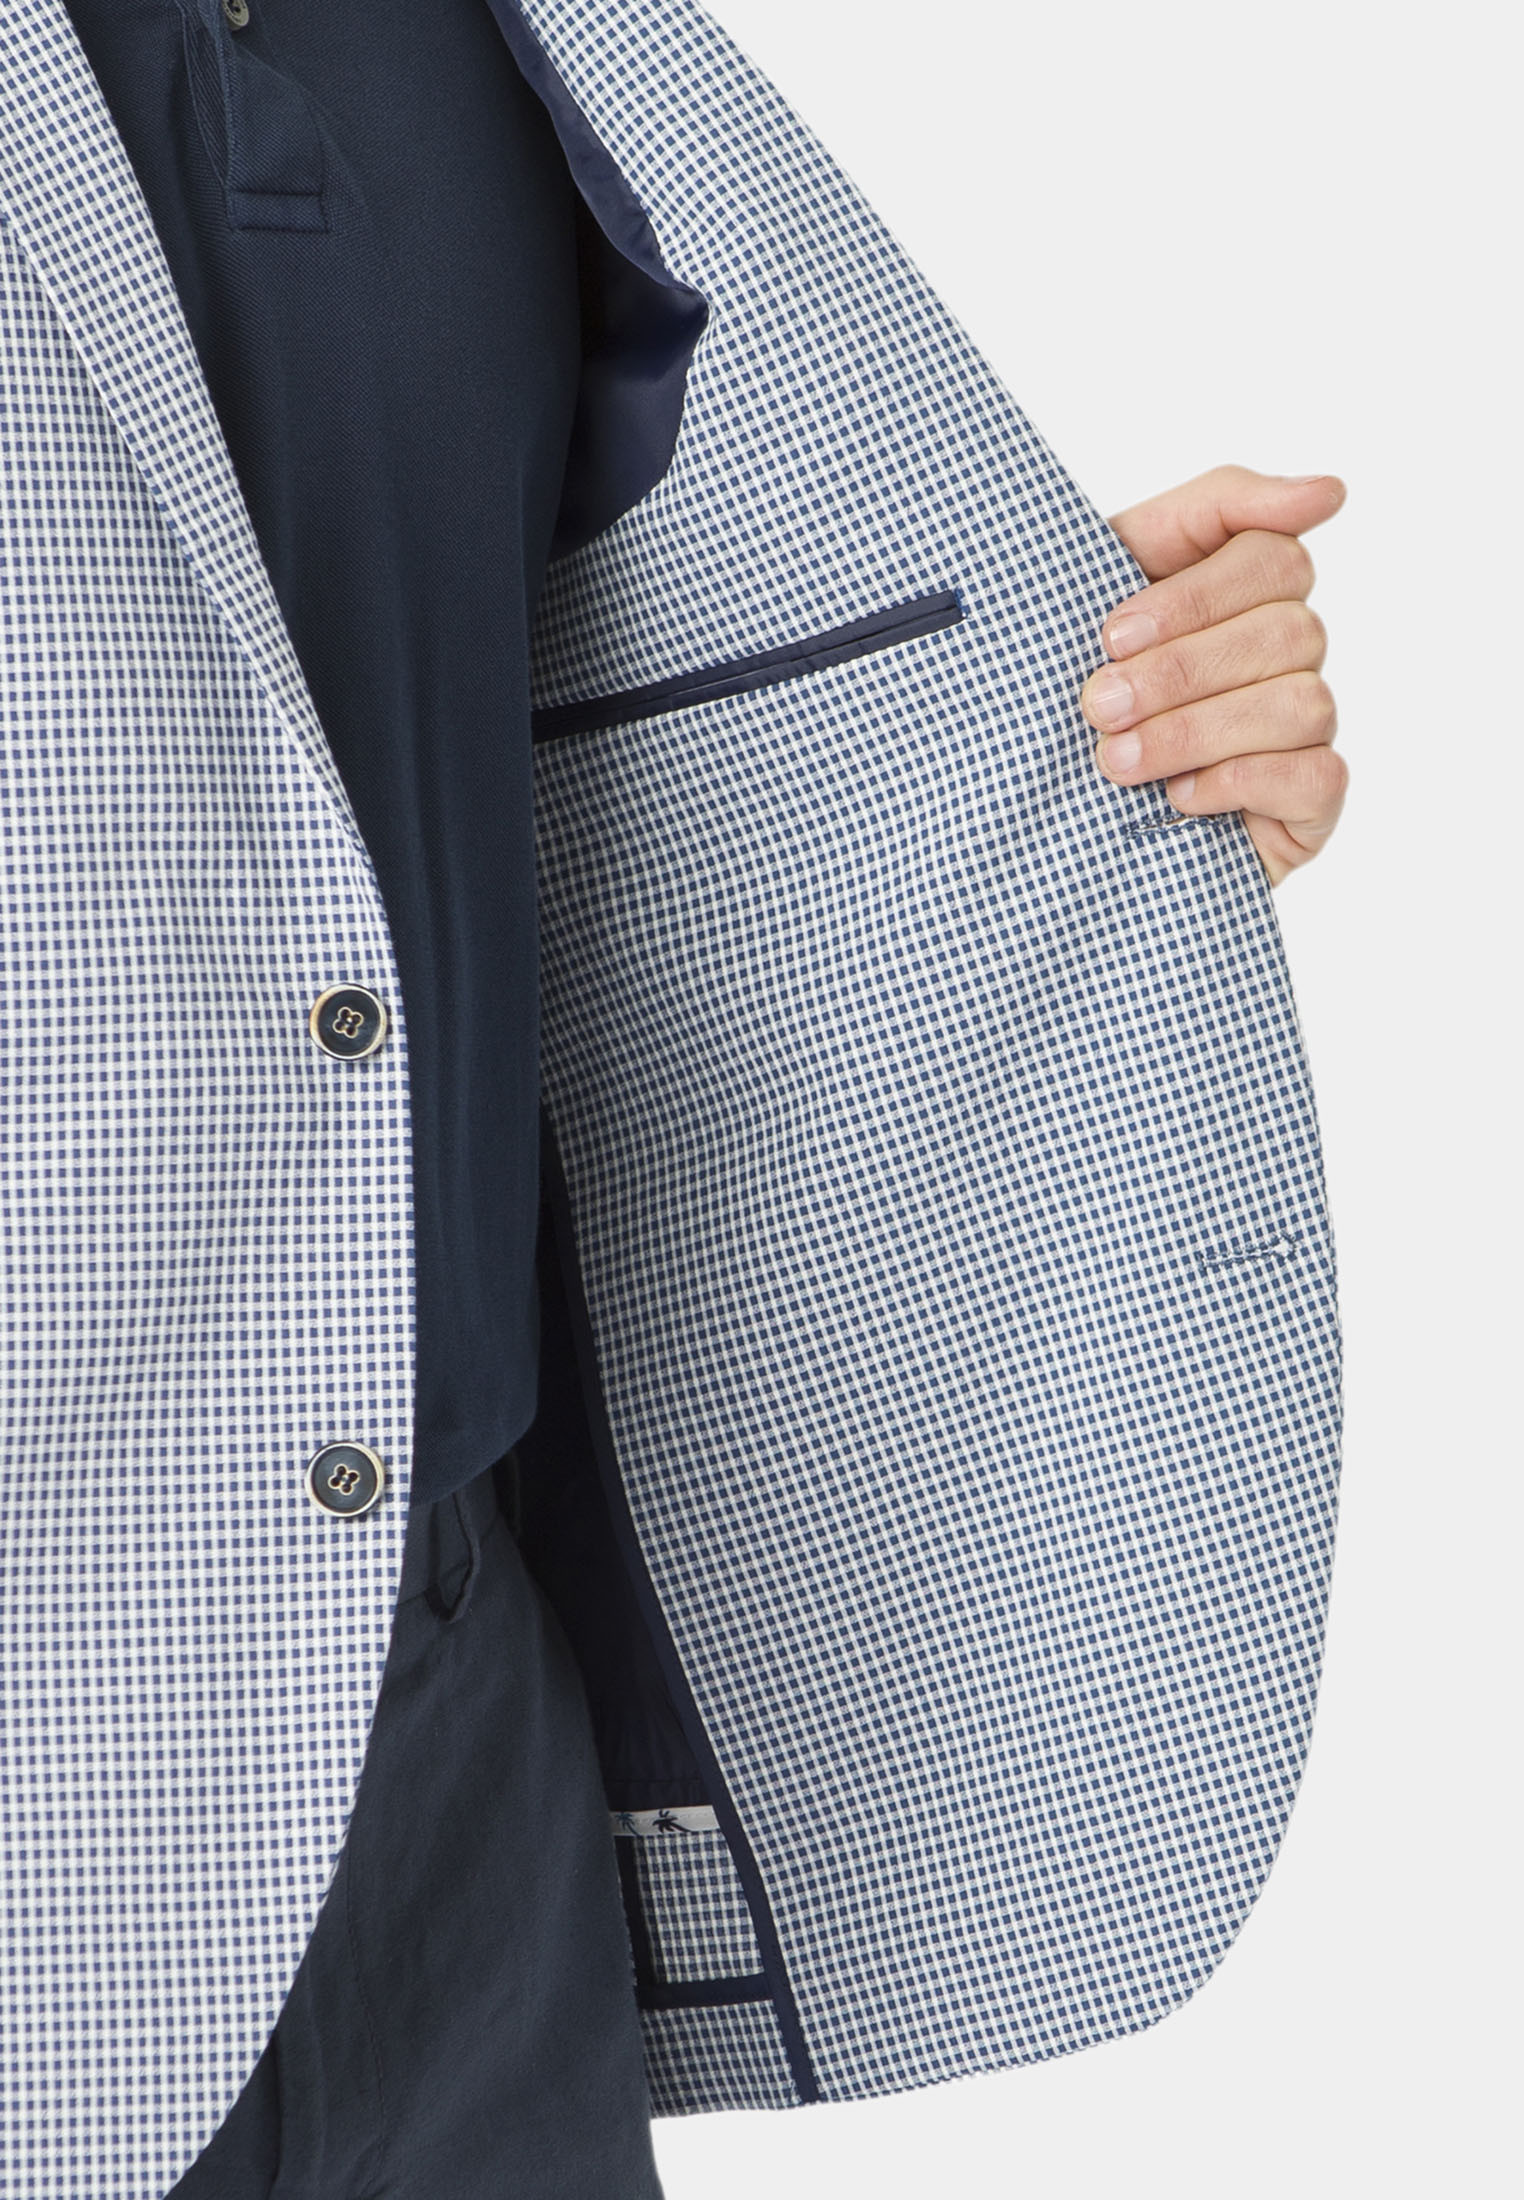 Carroll Blue Neat Check Seersucker Jacket